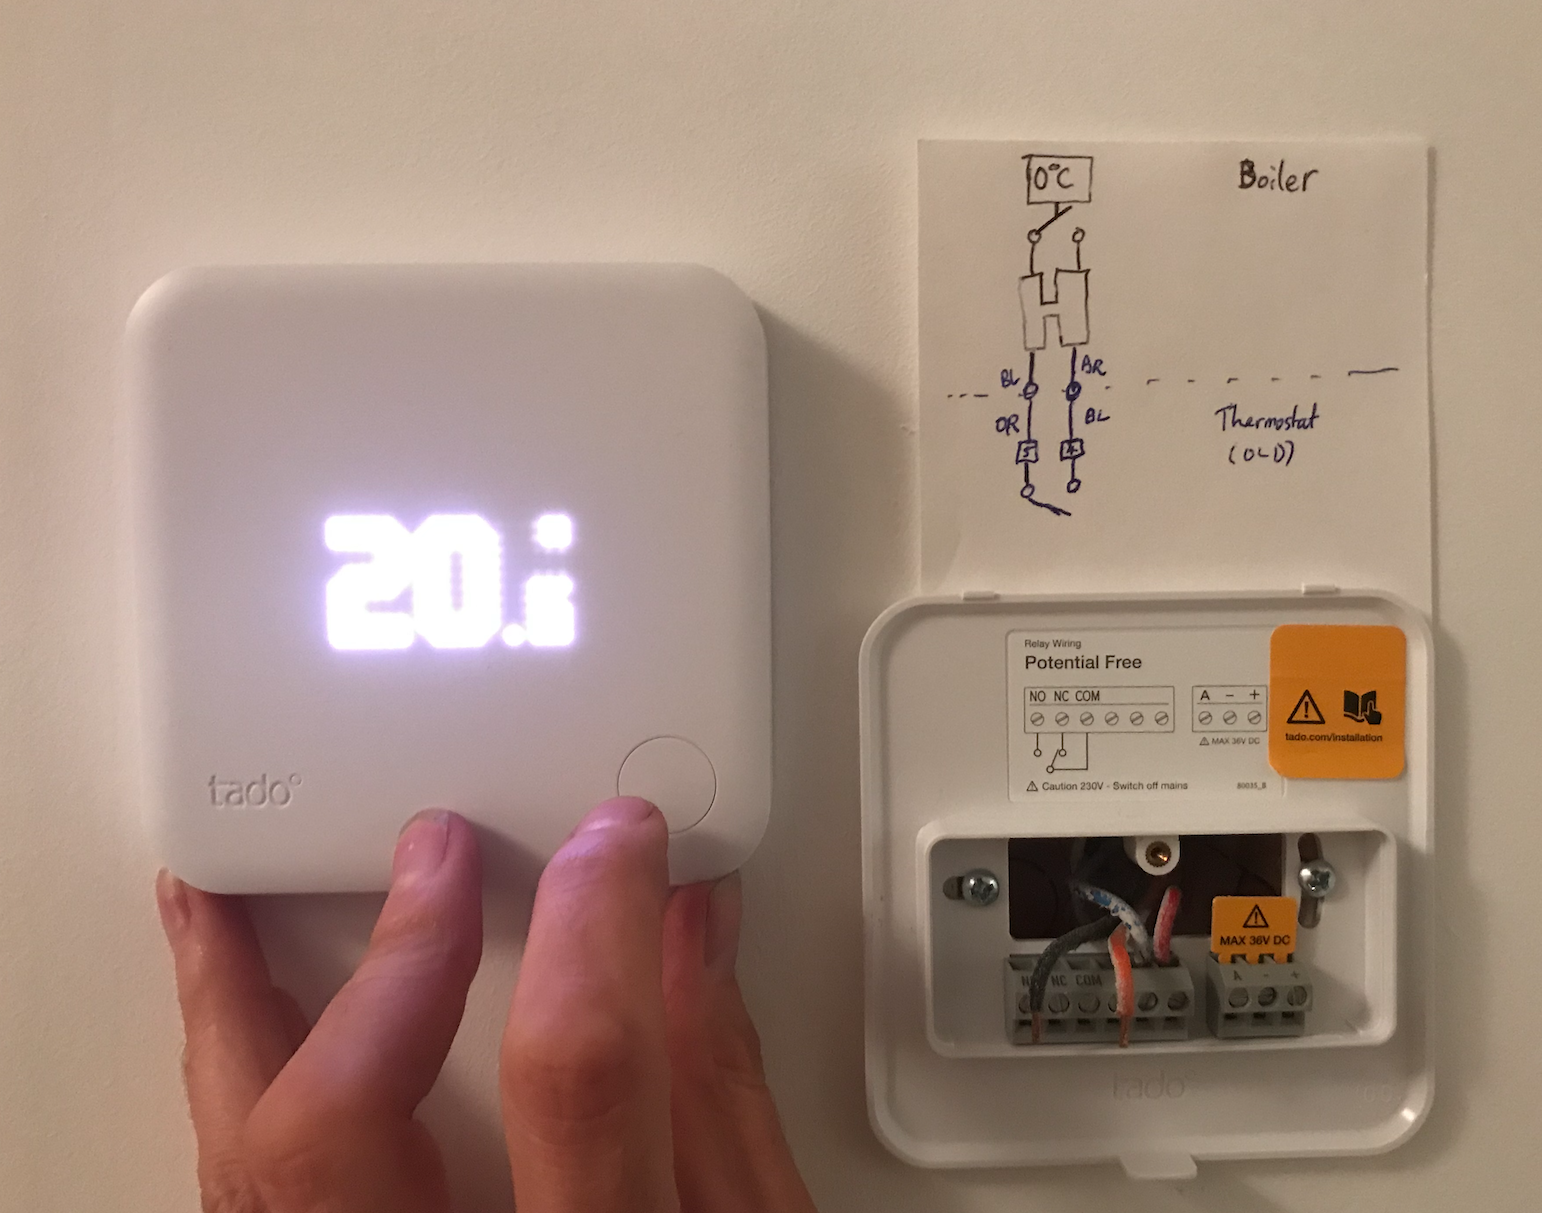 [SCHEMATICS_4HG]  Saunier Duval ISOTWIN F 24 E Installation to Smart Thermostat - 1046842 —  tado° Community | Wiring Diagram For Tado Thermostat |  | tado° Community